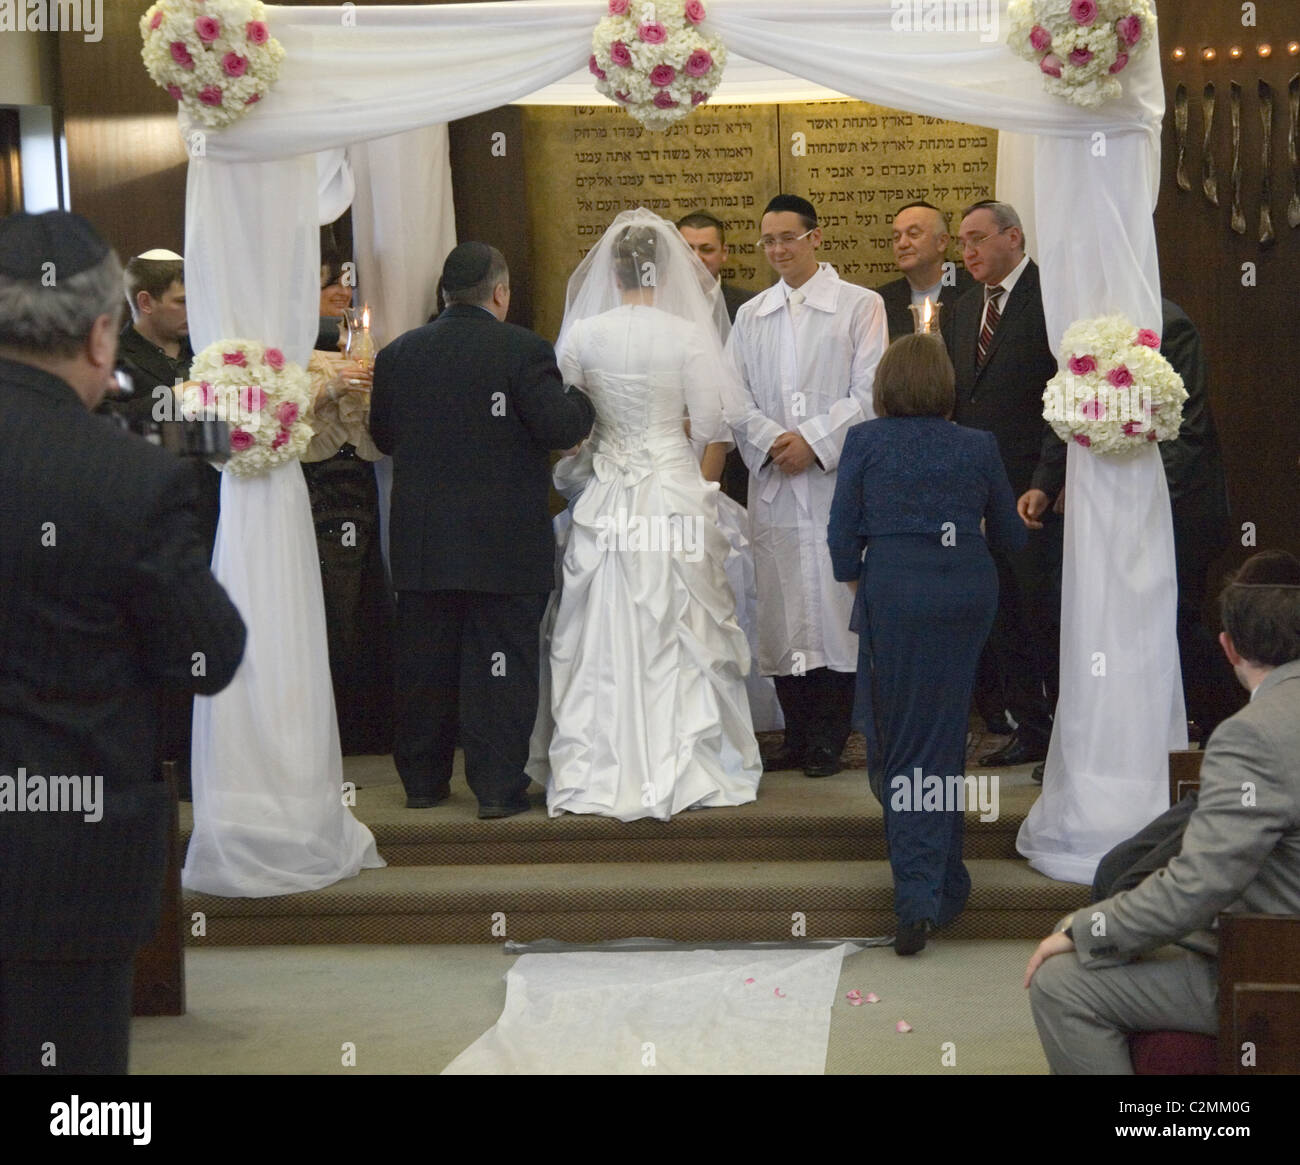 Bride accompanied by her parents meets the groom at an Orthodox Jewish wedding ceremony in Brooklyn, NY. - Stock Image